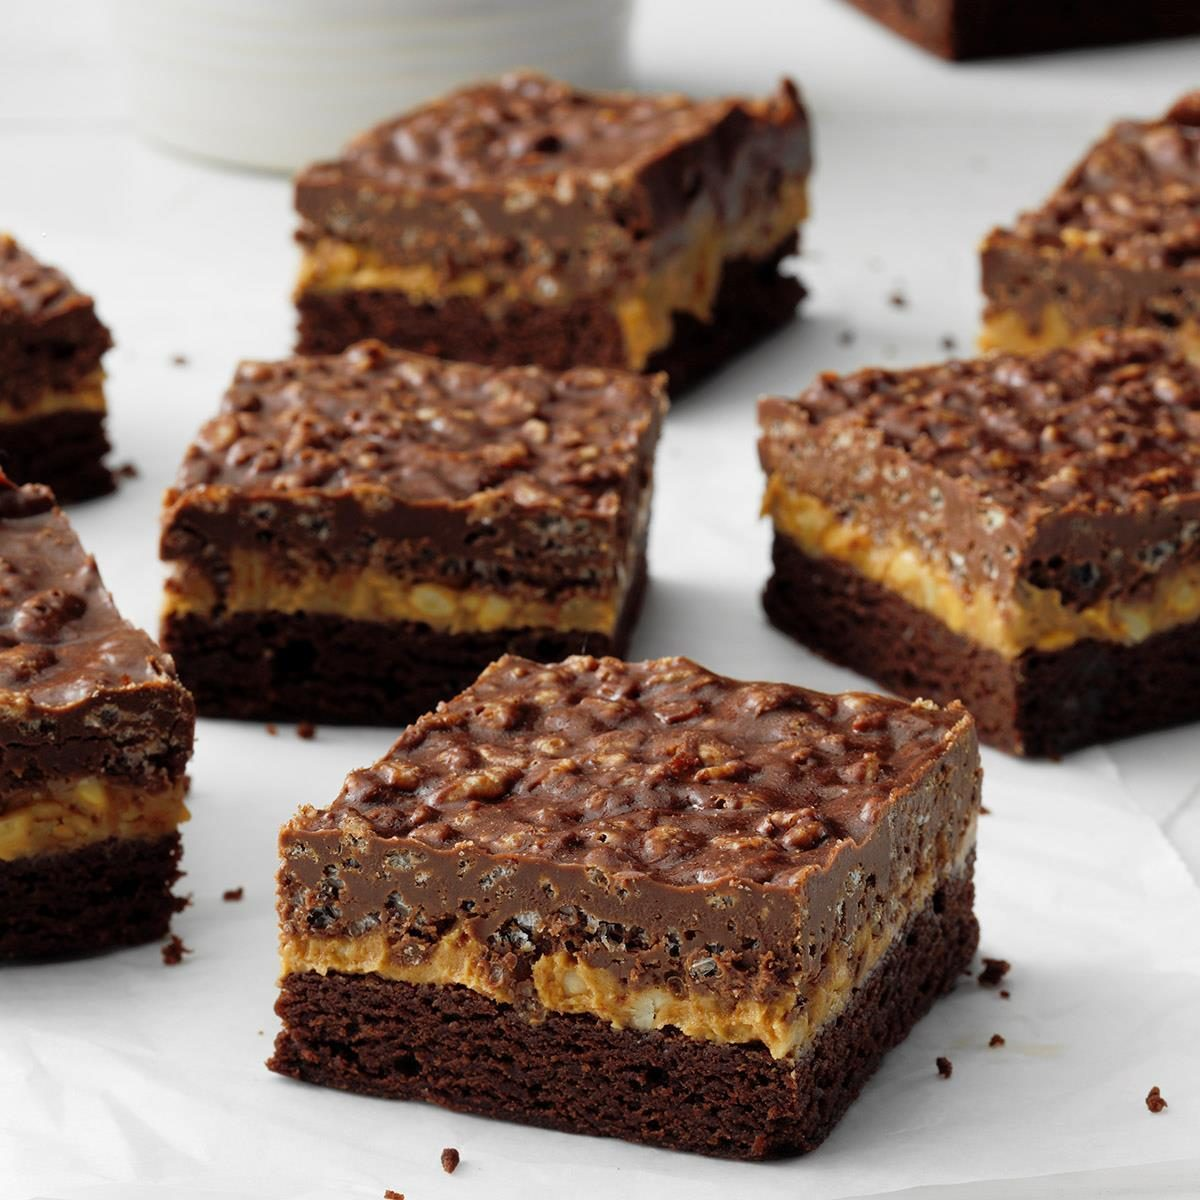 Chocolate & Peanut Butter Crispy Bars